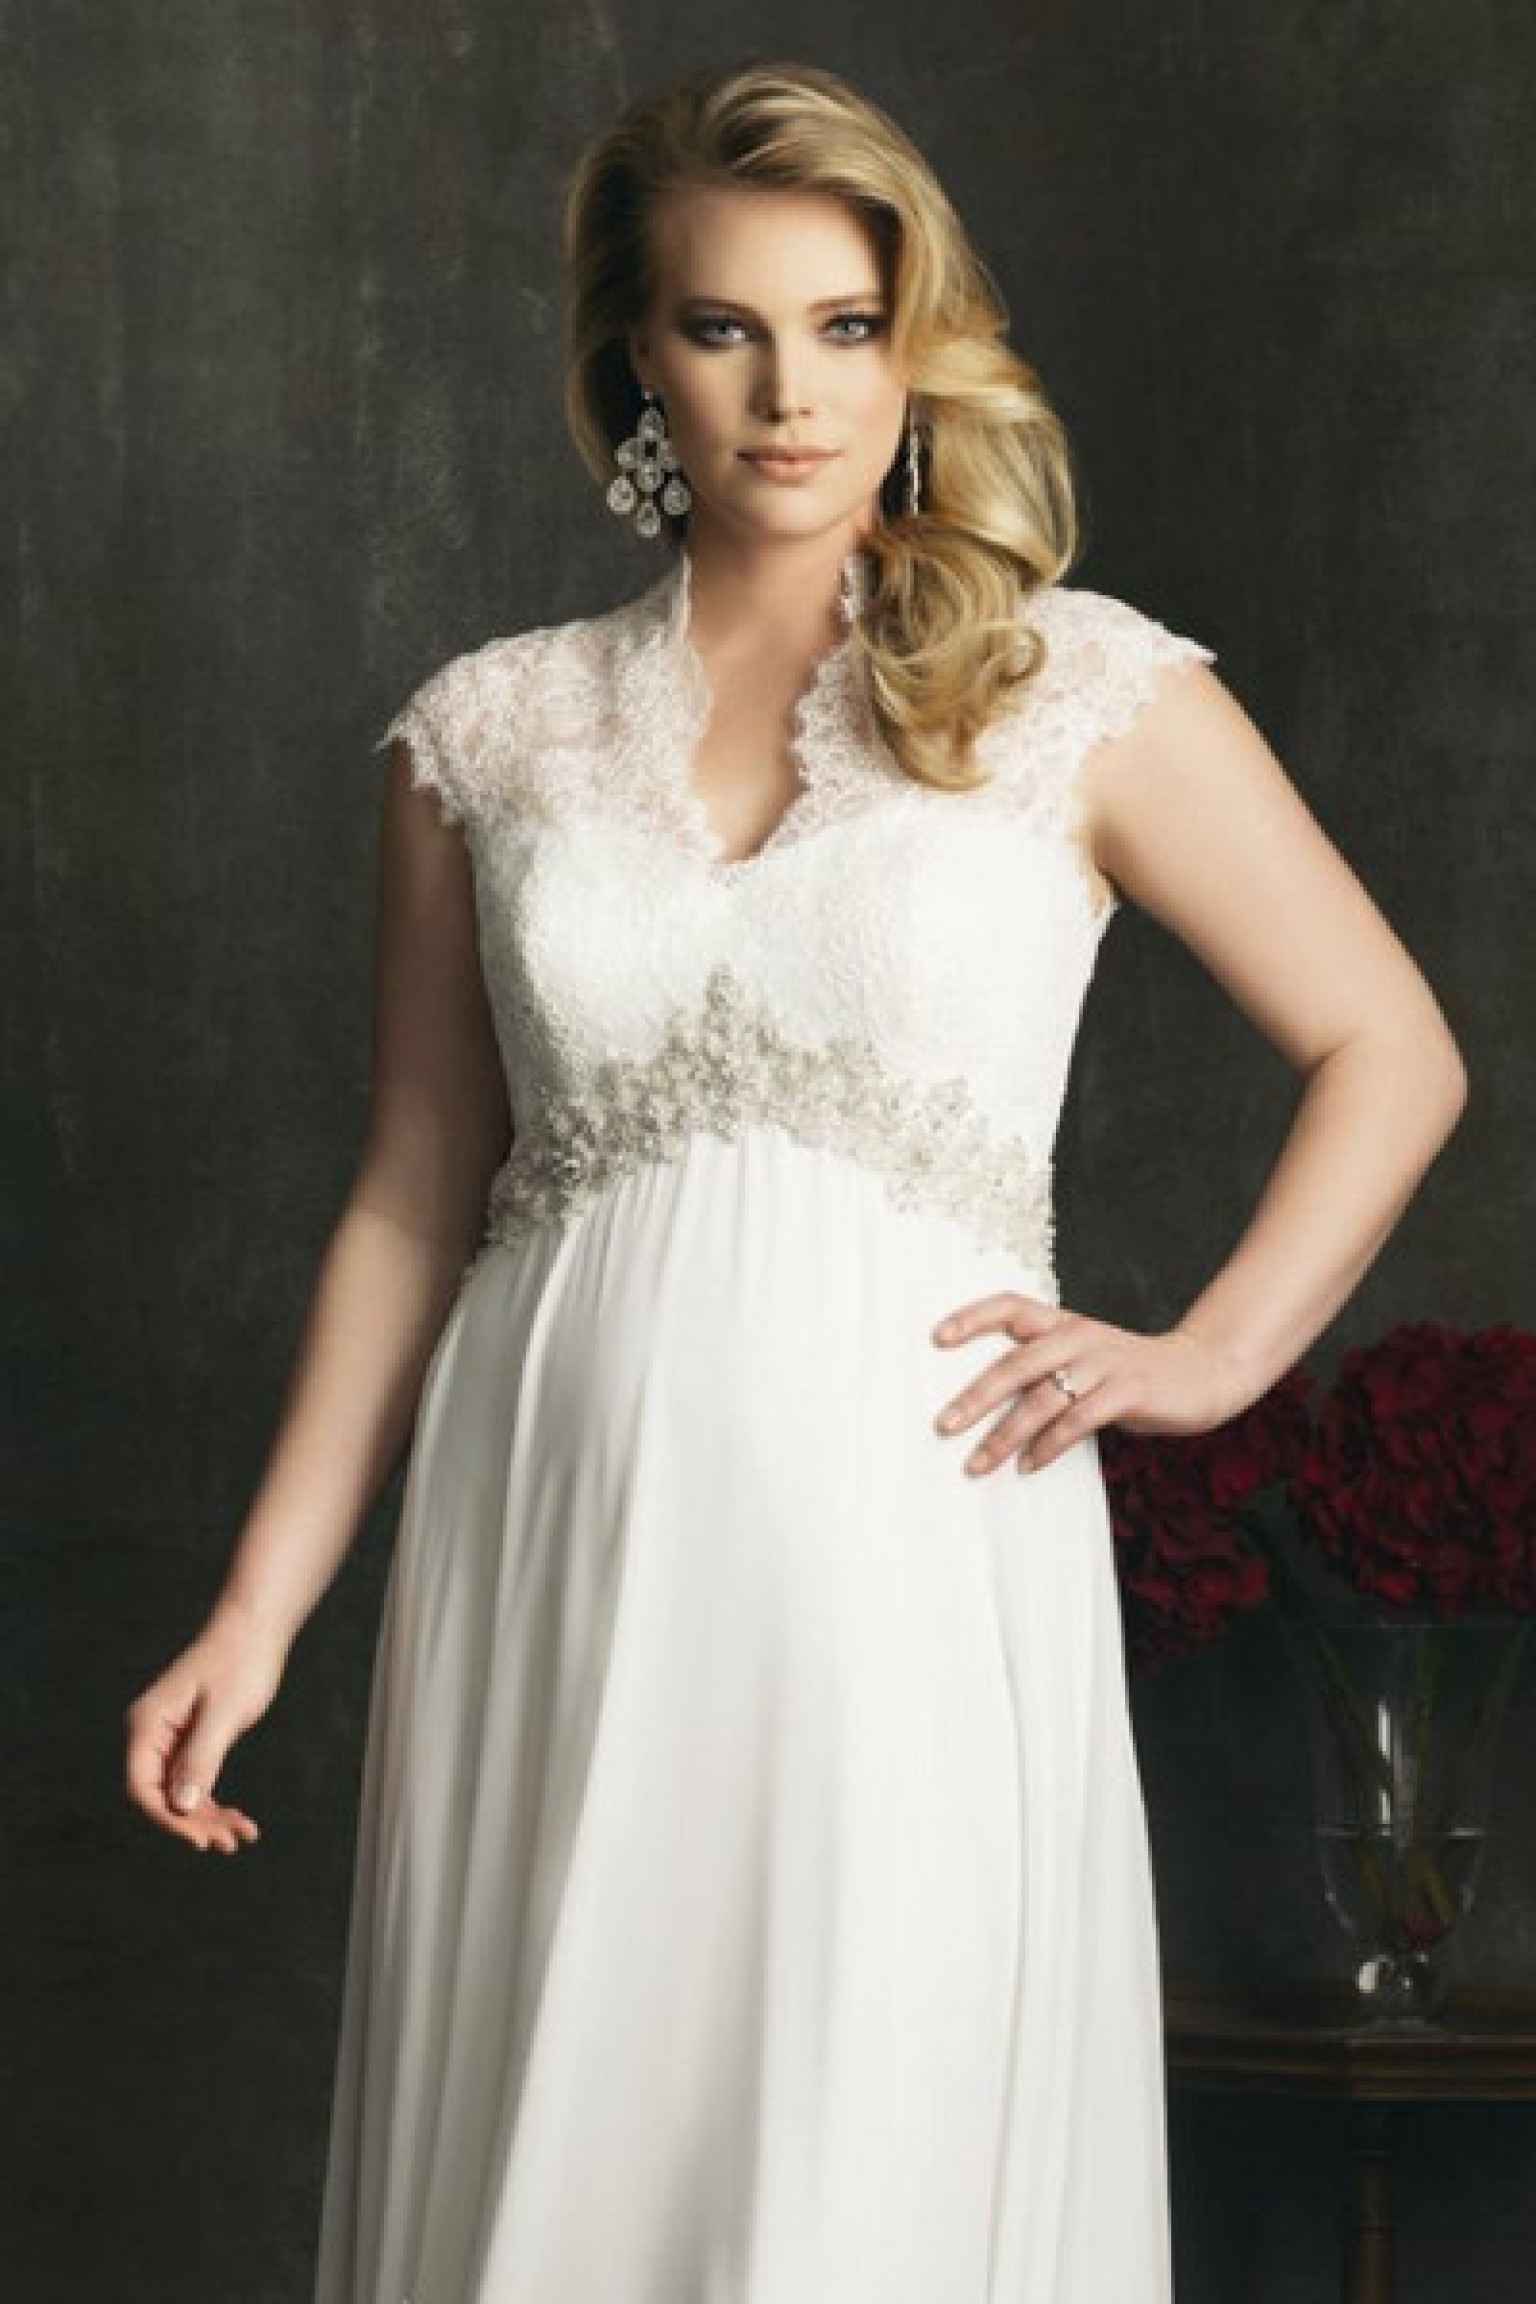 196cb0d0c81 Shopping Tips for Plus-Size Brides